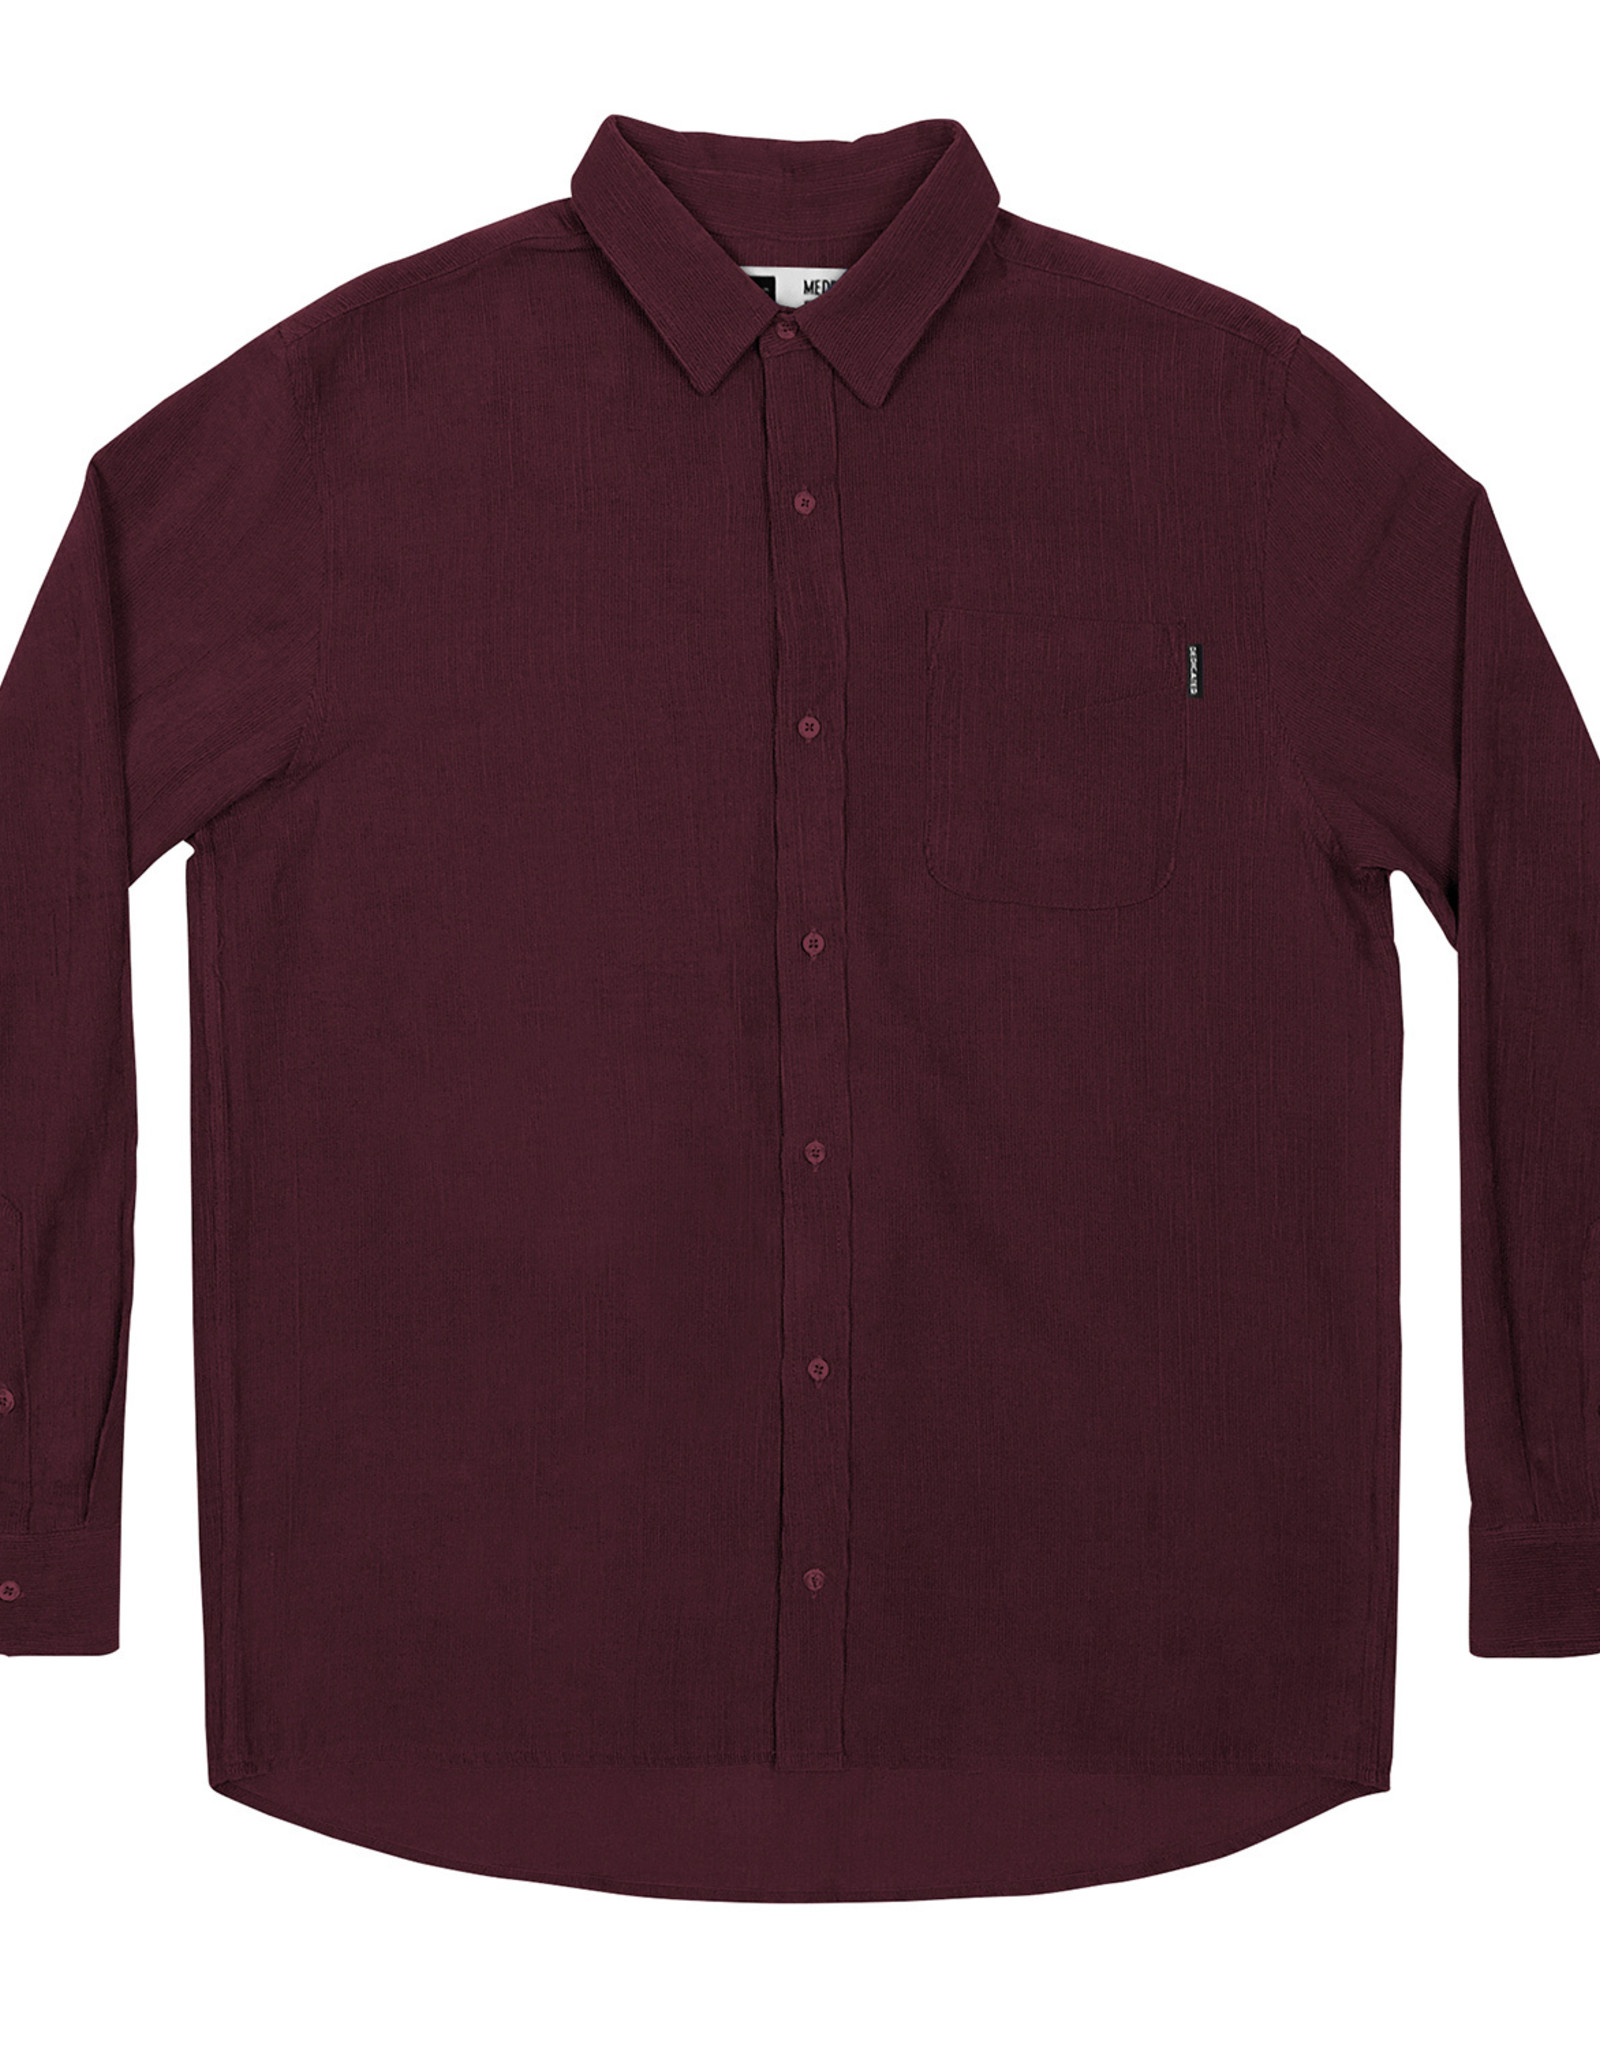 Dedicated HEMD CORDUROY BORDEAUX